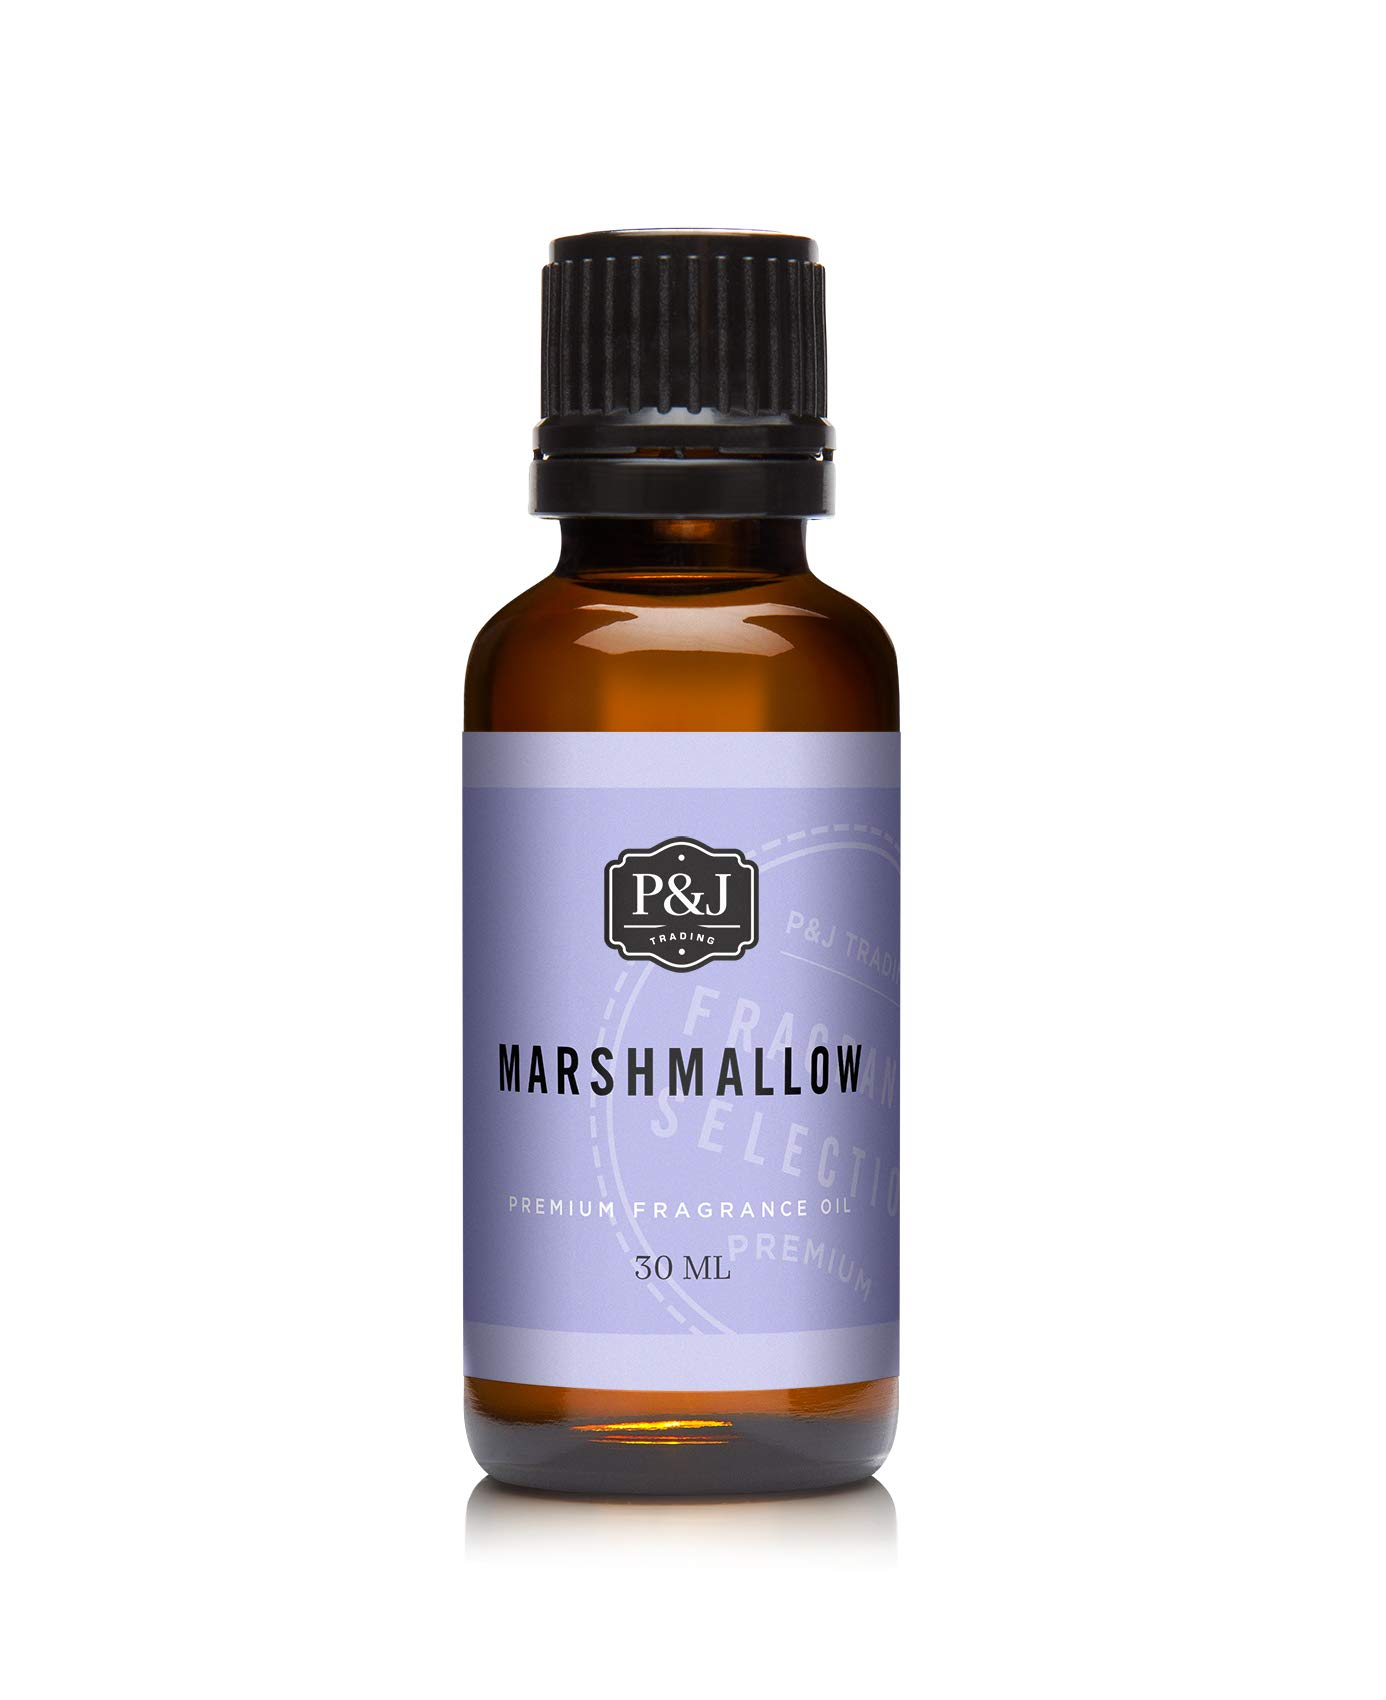 Marshmallow Fragrance Oil - Premium Grade Scented Oil - 30ml